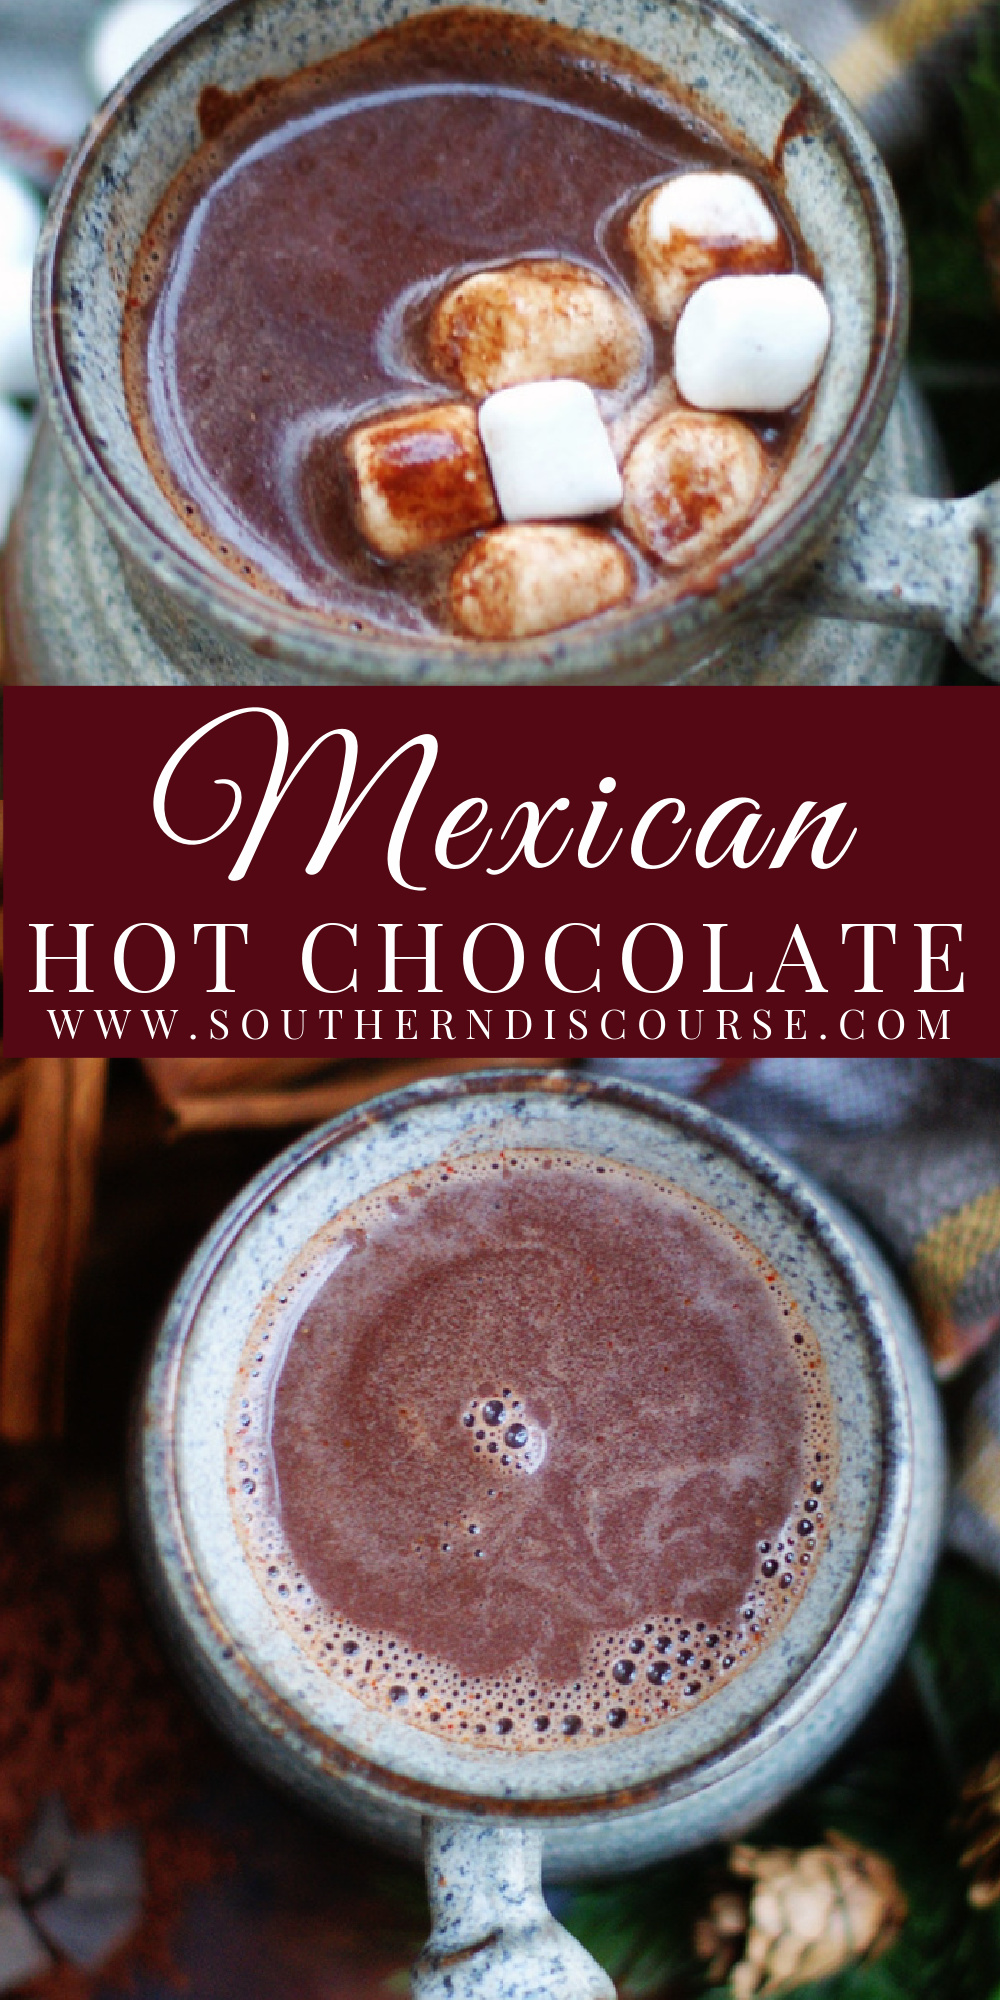 Cozy up with a warm cup of real chocolate with hints of vanilla, cinnamon, cayenne and chile. Homemade Mexican Hot Chocolate is so rich & creamy with just a little spicy kick to warm you from head to toe! On the stove top or in a crock pot, this simple recipe delivers indulgent cups of chocolatey goodness every time.